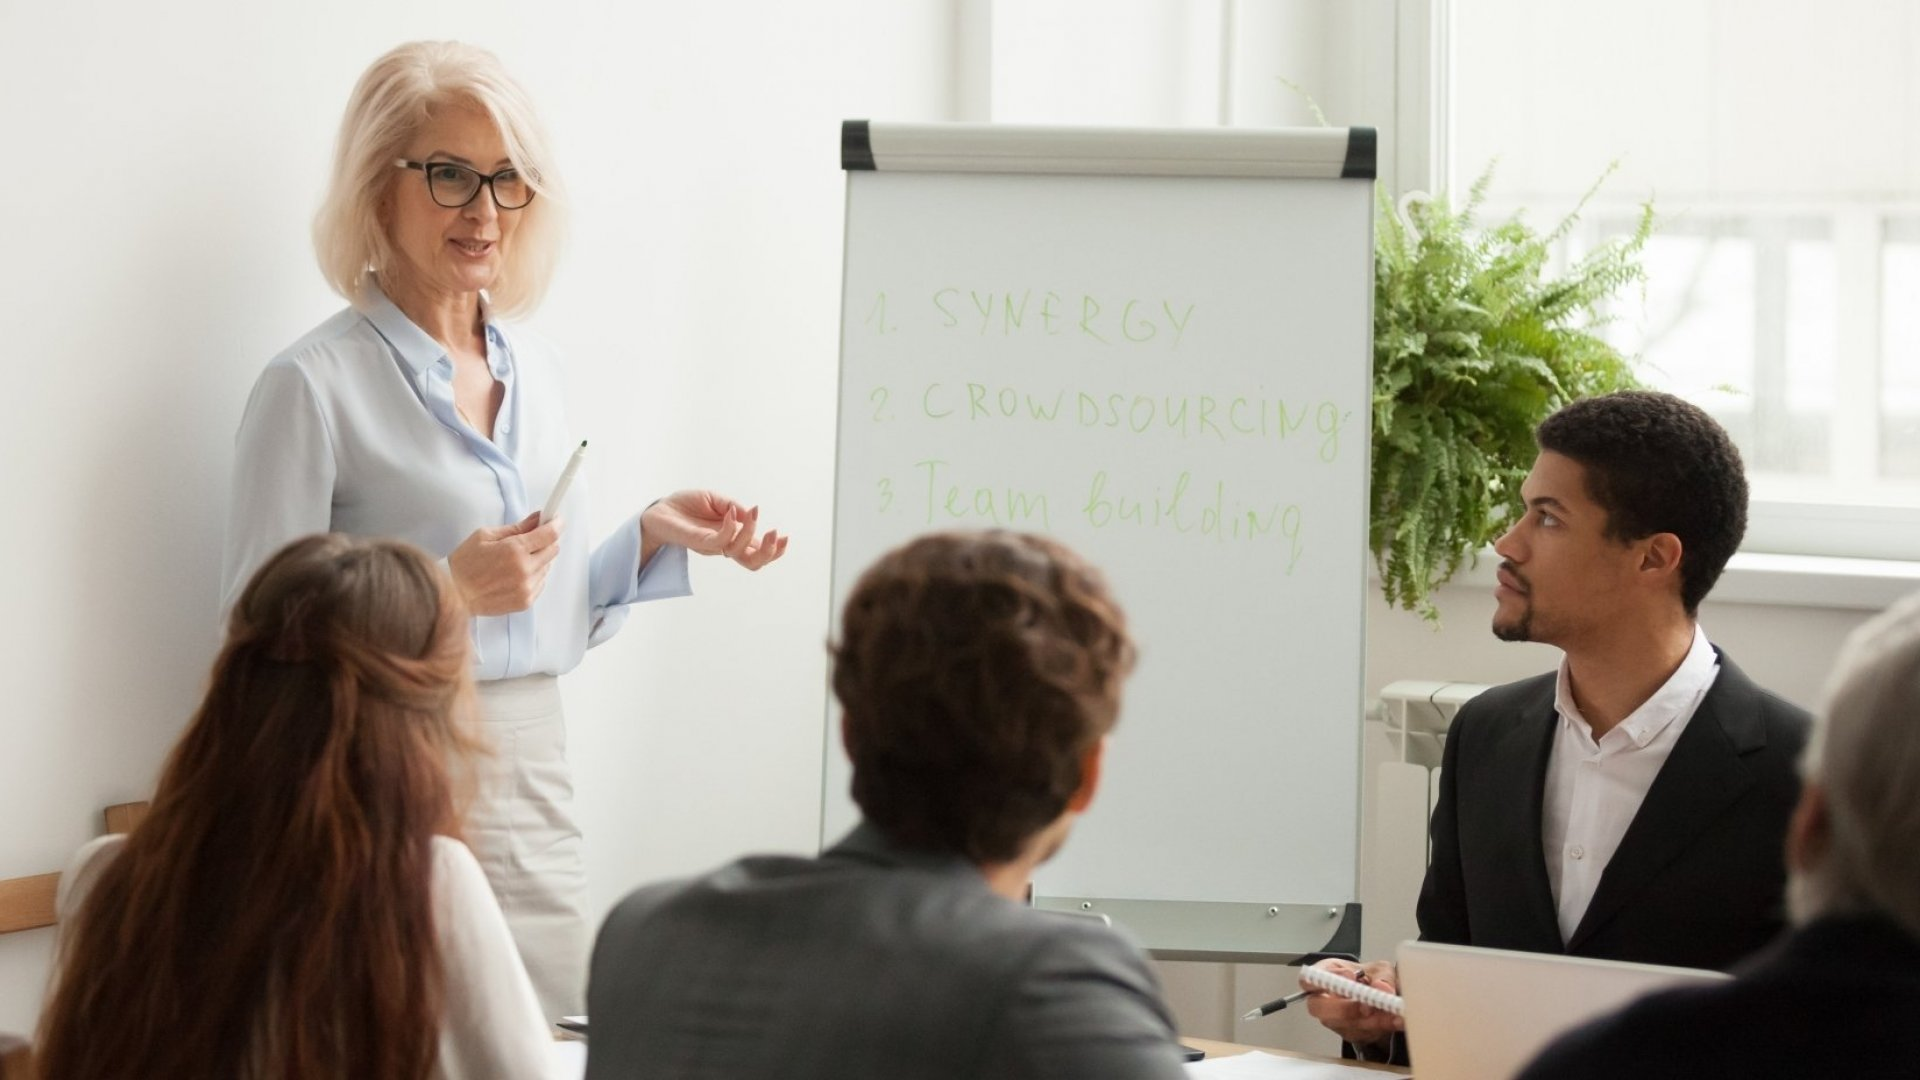 To Inspire Employees, Develop Your Leadership Voice. Here's How